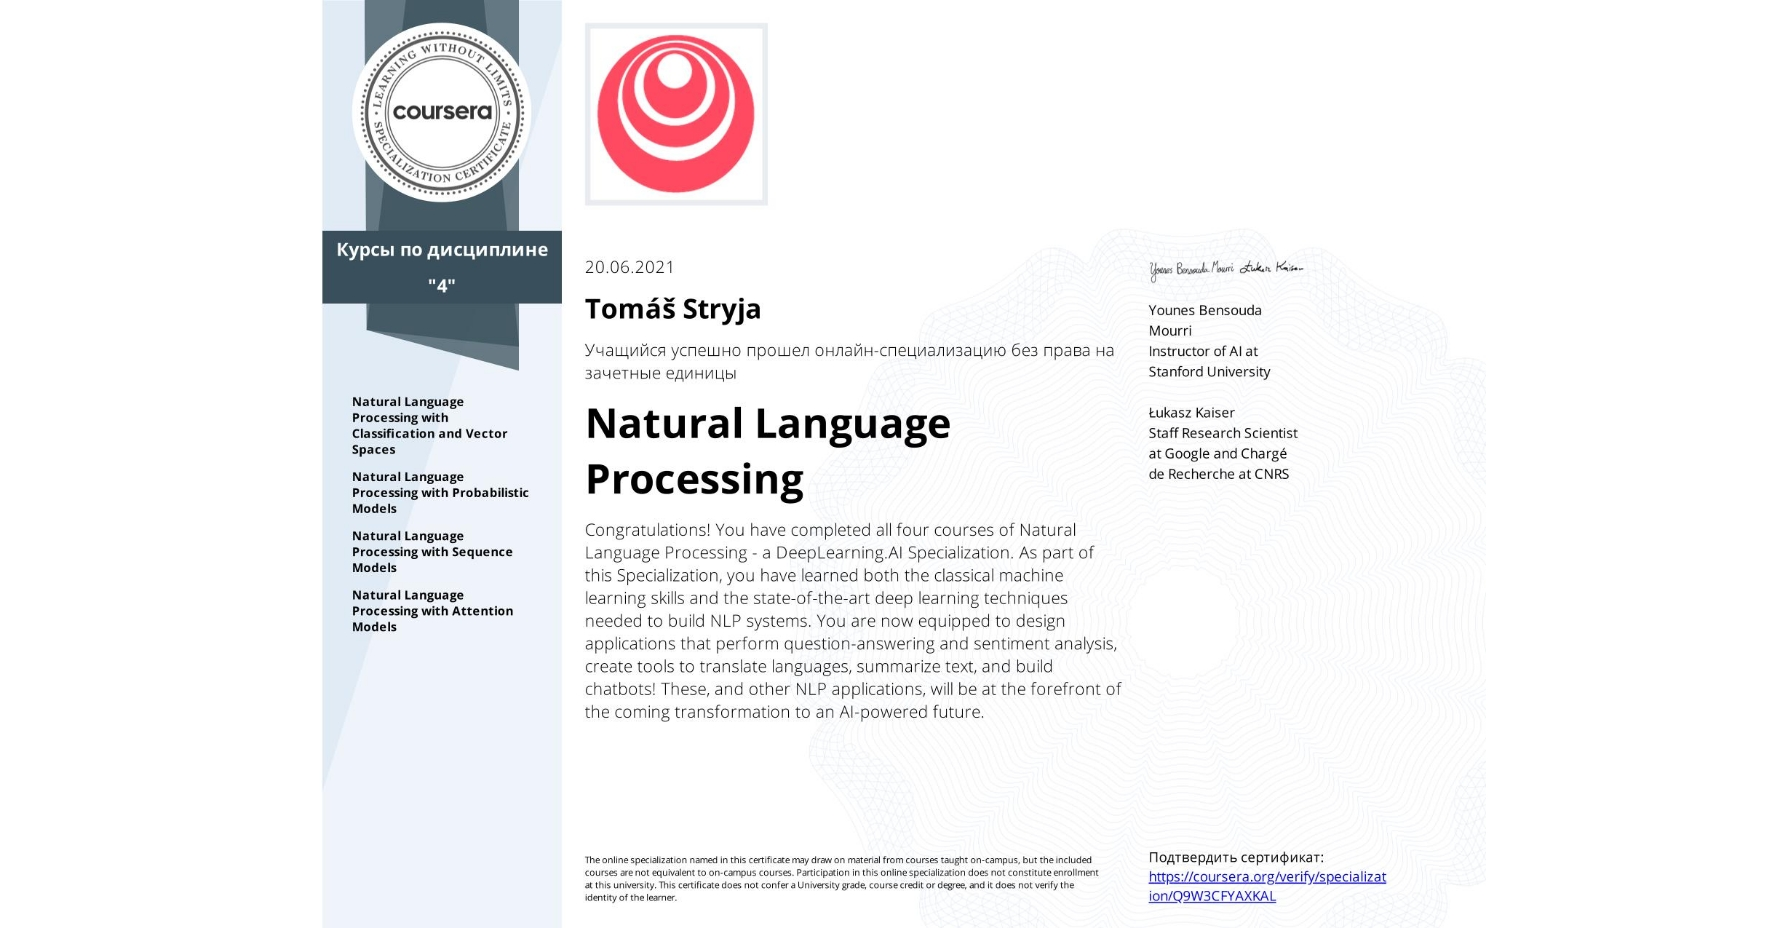 View certificate for Tomáš Stryja, Natural Language Processing, offered through Coursera. Congratulations! You have completed all four courses of Natural Language Processing - a deeplearning.ai Specialization.   As part of this Specialization, you have learned the classical machine learning skills and the state-of-the-art deep learning techniques needed to build NLP systems. You are now equipped to design applications that perform question-answering and sentiment analysis, create tools to translate languages and summarize text, and build chatbots!   These, and other NLP applications, are going to be at the forefront of the coming transformation to an AI-powered future.